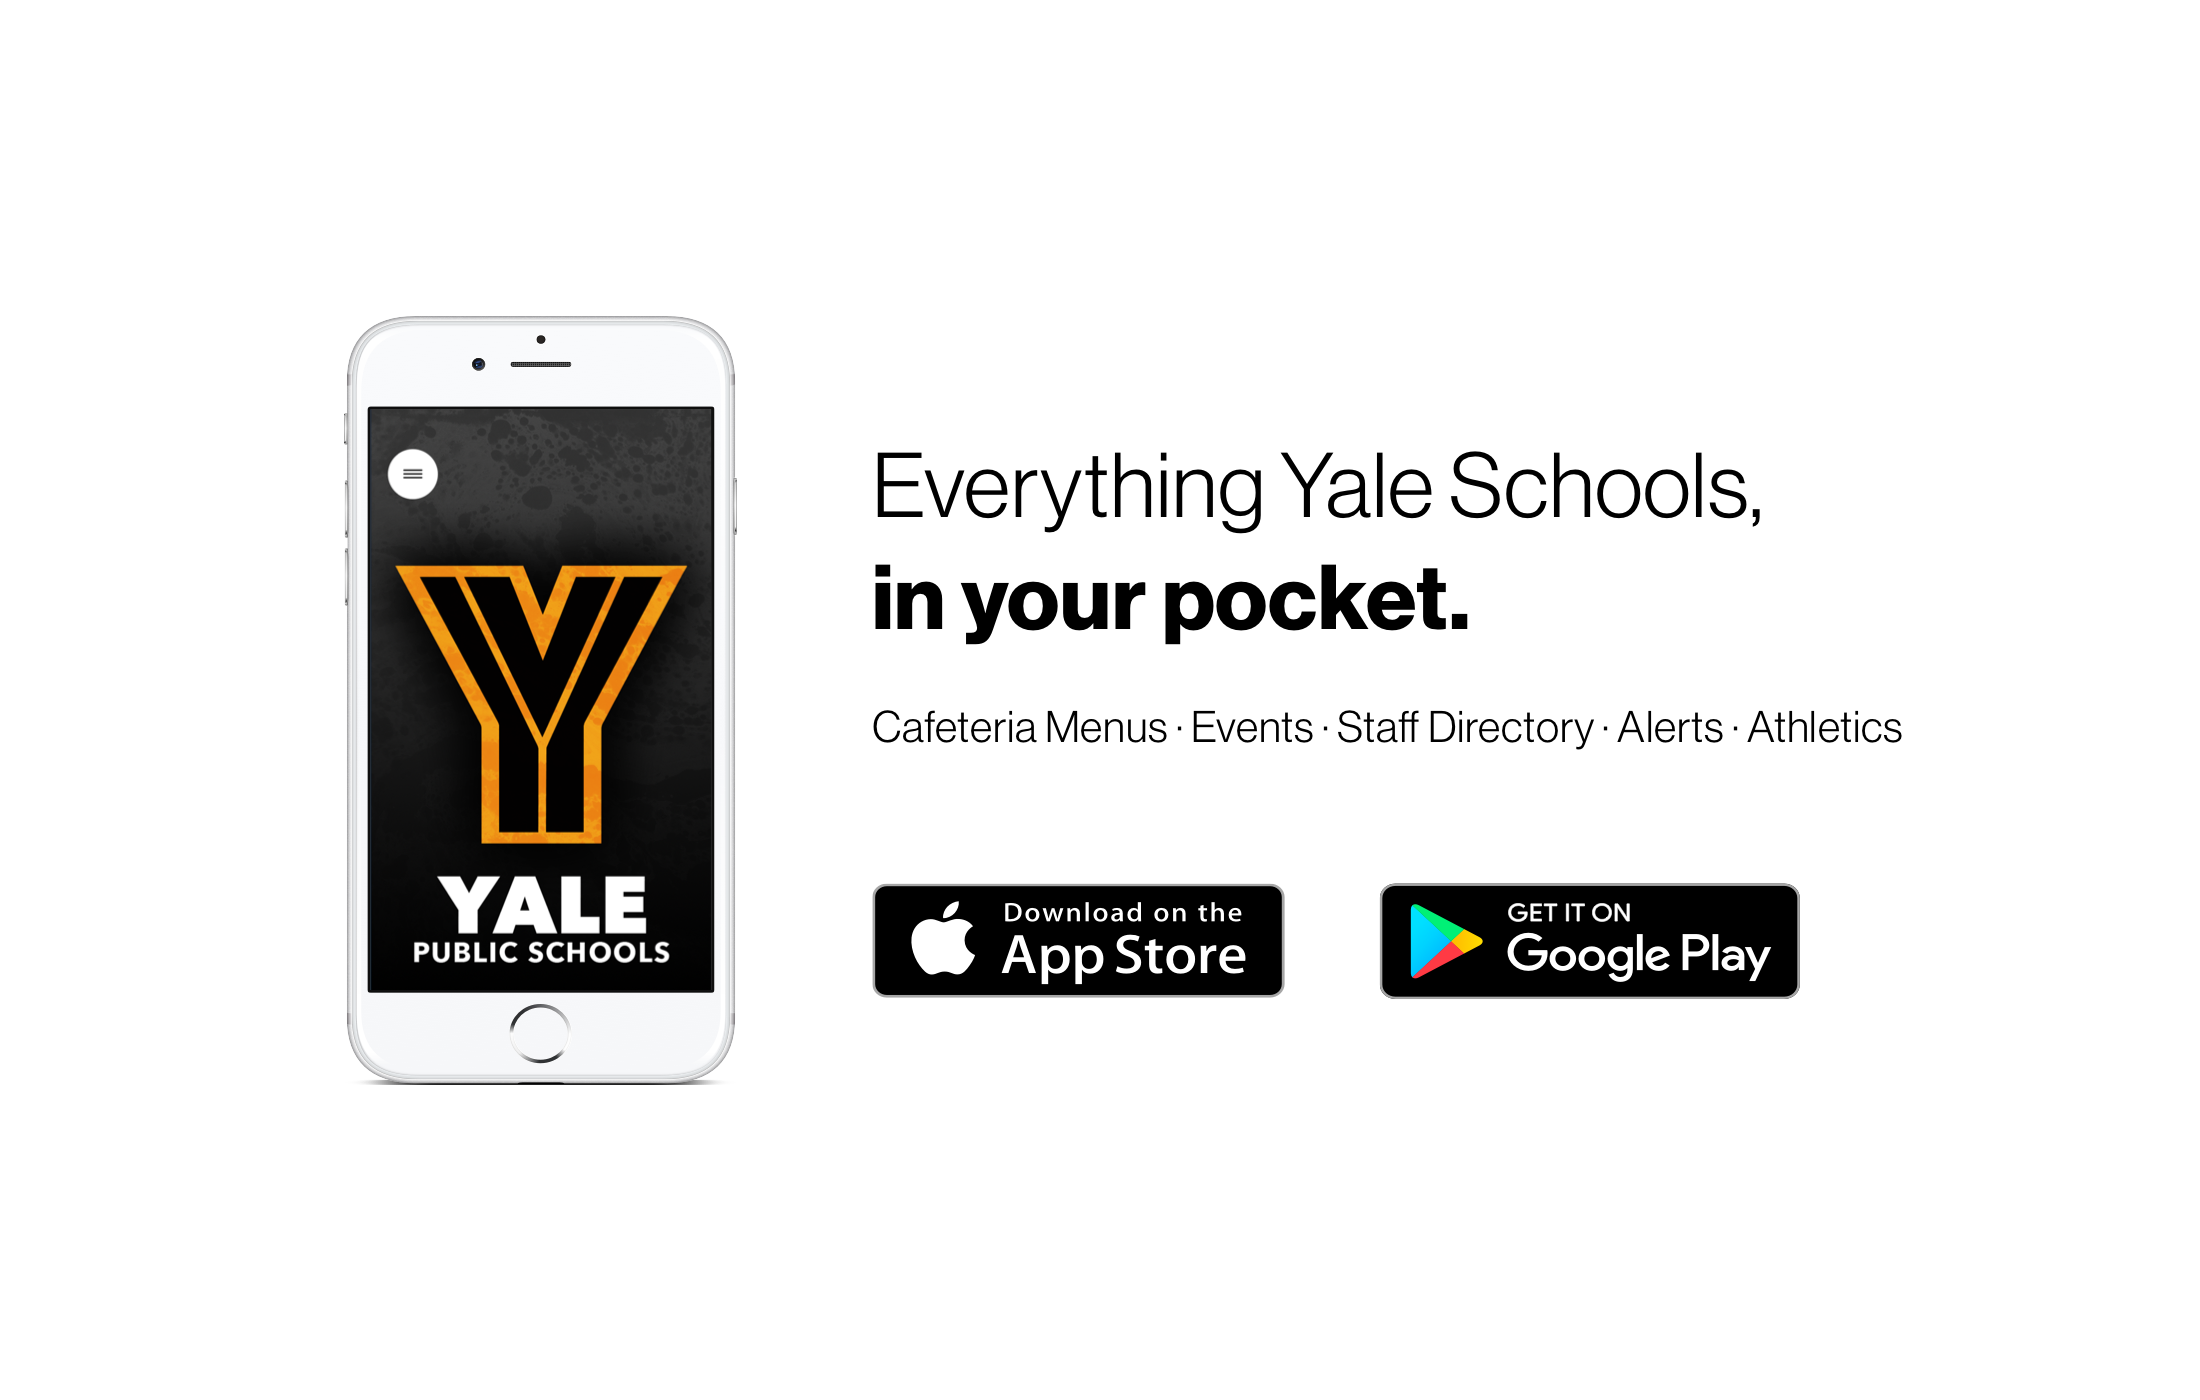 It's everything Yale Schools in your pocket